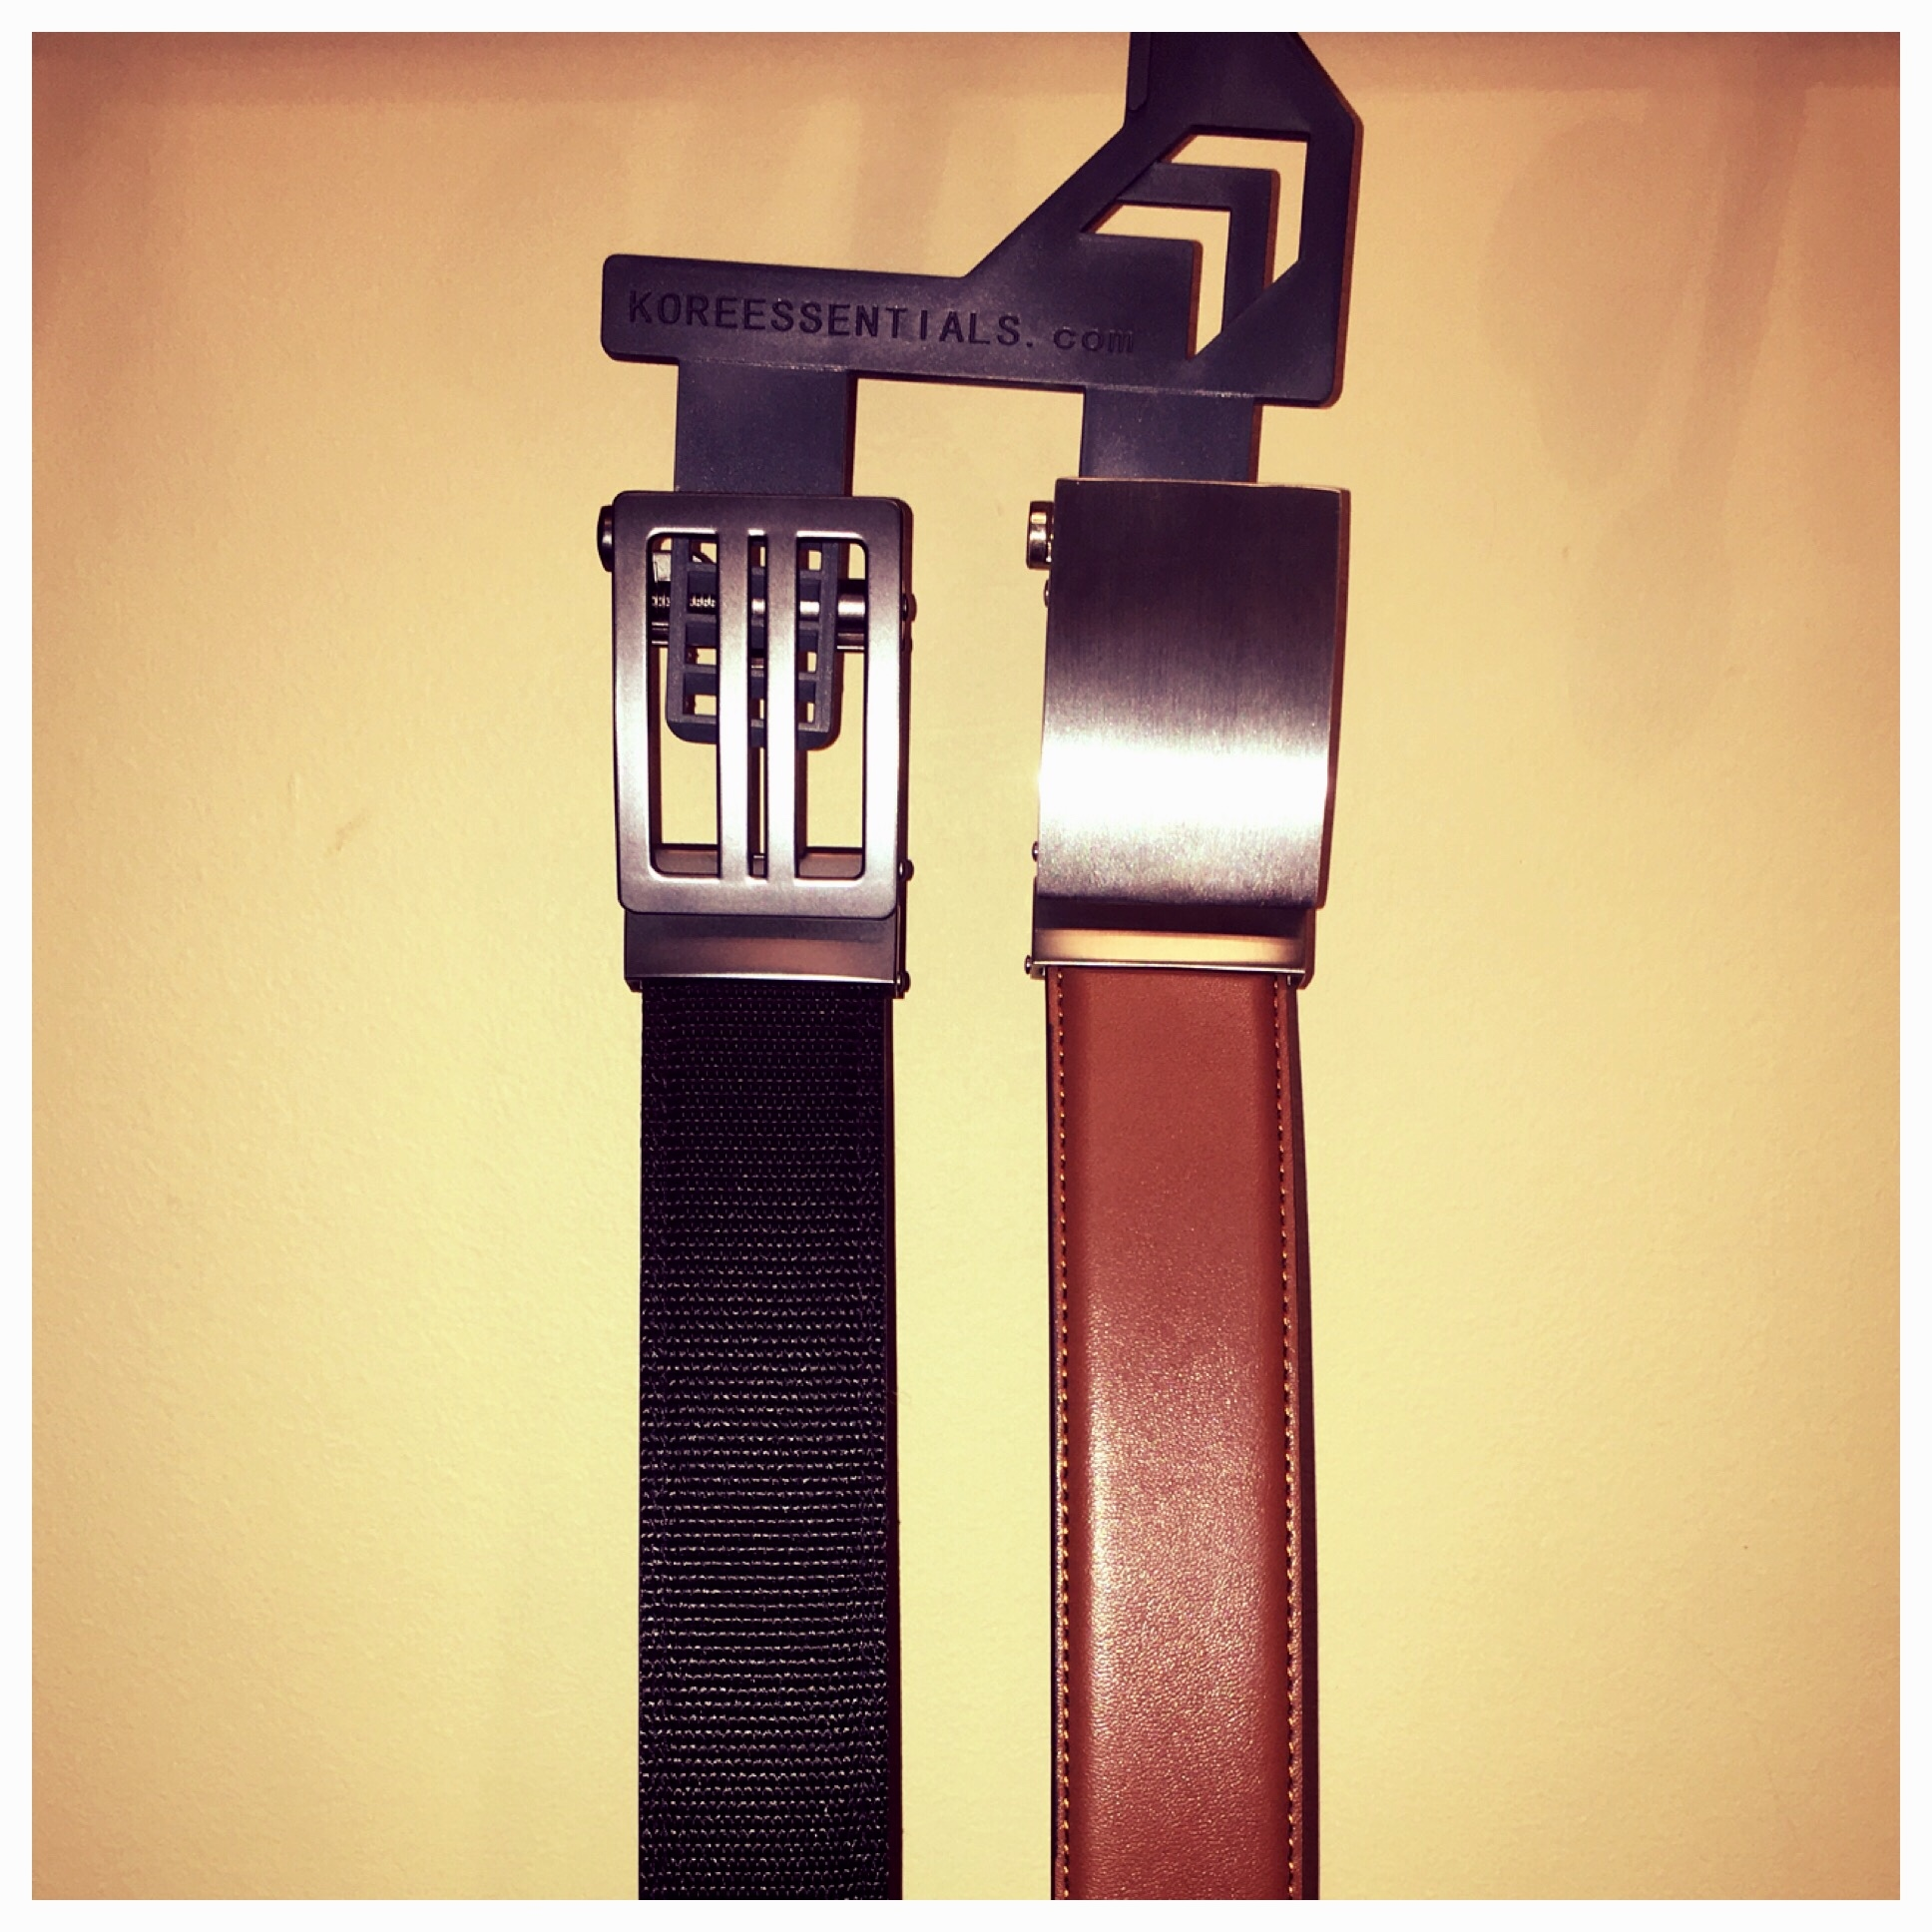 A Marine S Recommendation For Carrying Pistols With Reflex Sights Kore Gun Belts Sofrep These gun belts from blackbeard belts and kore essentials use a ratcheting type mechanism that allows you to dial in exactly how tight you want the belt. reflex sights kore gun belts